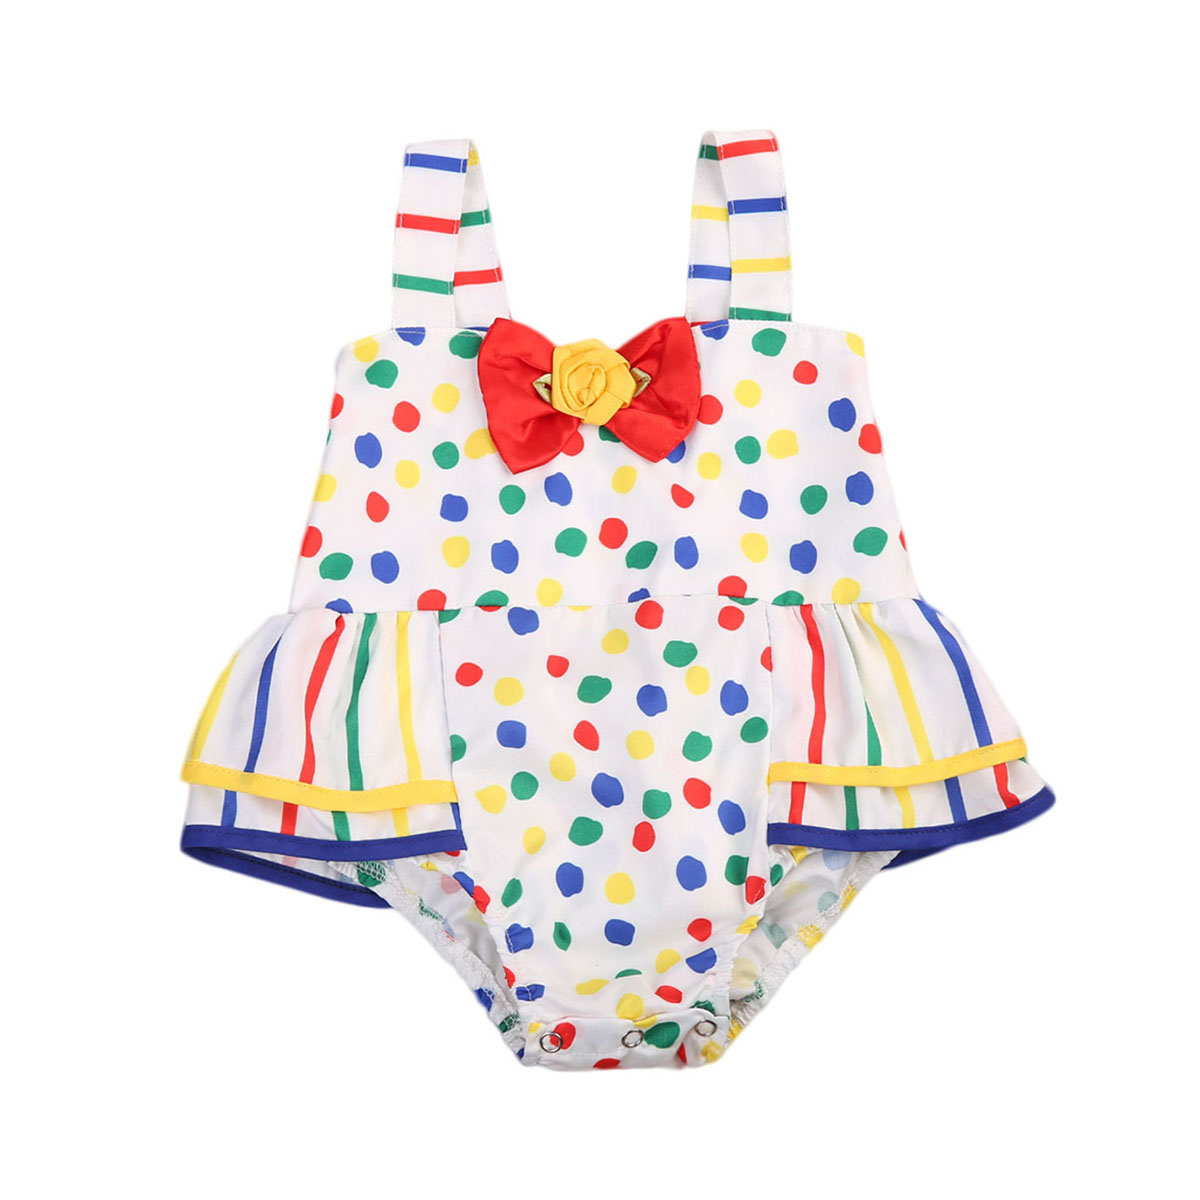 Infant Baby Girls Rainbow Polka Dot   Romper   Baby Girl Summer Cute Bowknot Princess Jumpsuit Outfits Sunsuit Clothes Set